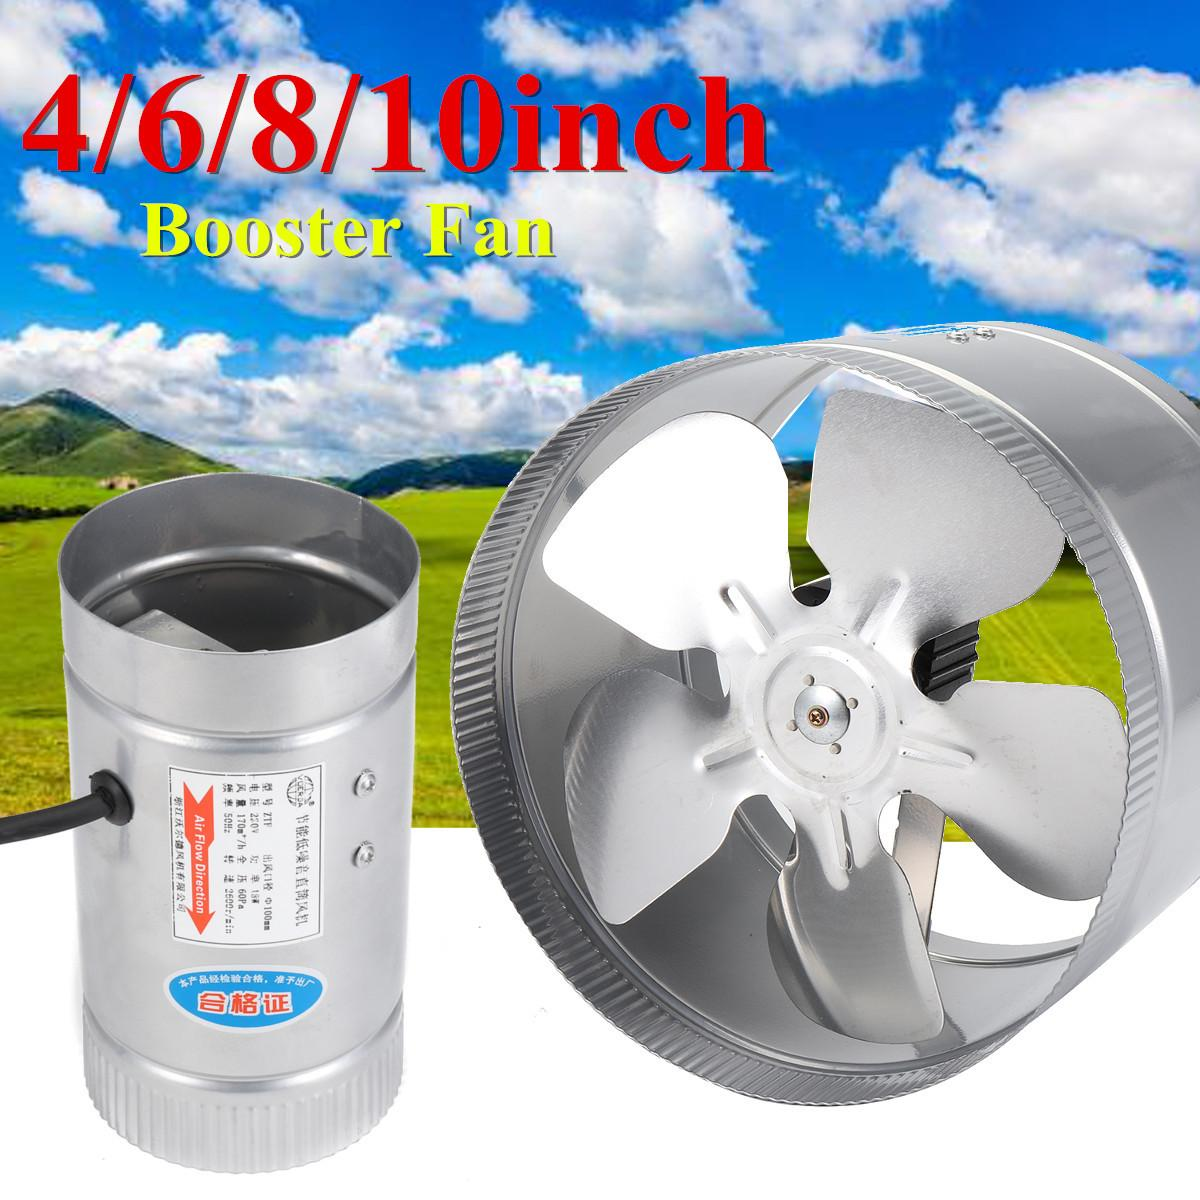 4 6 8 10 inch inline duct booster fan air exhaust ventilation blower grow vent 8 inch